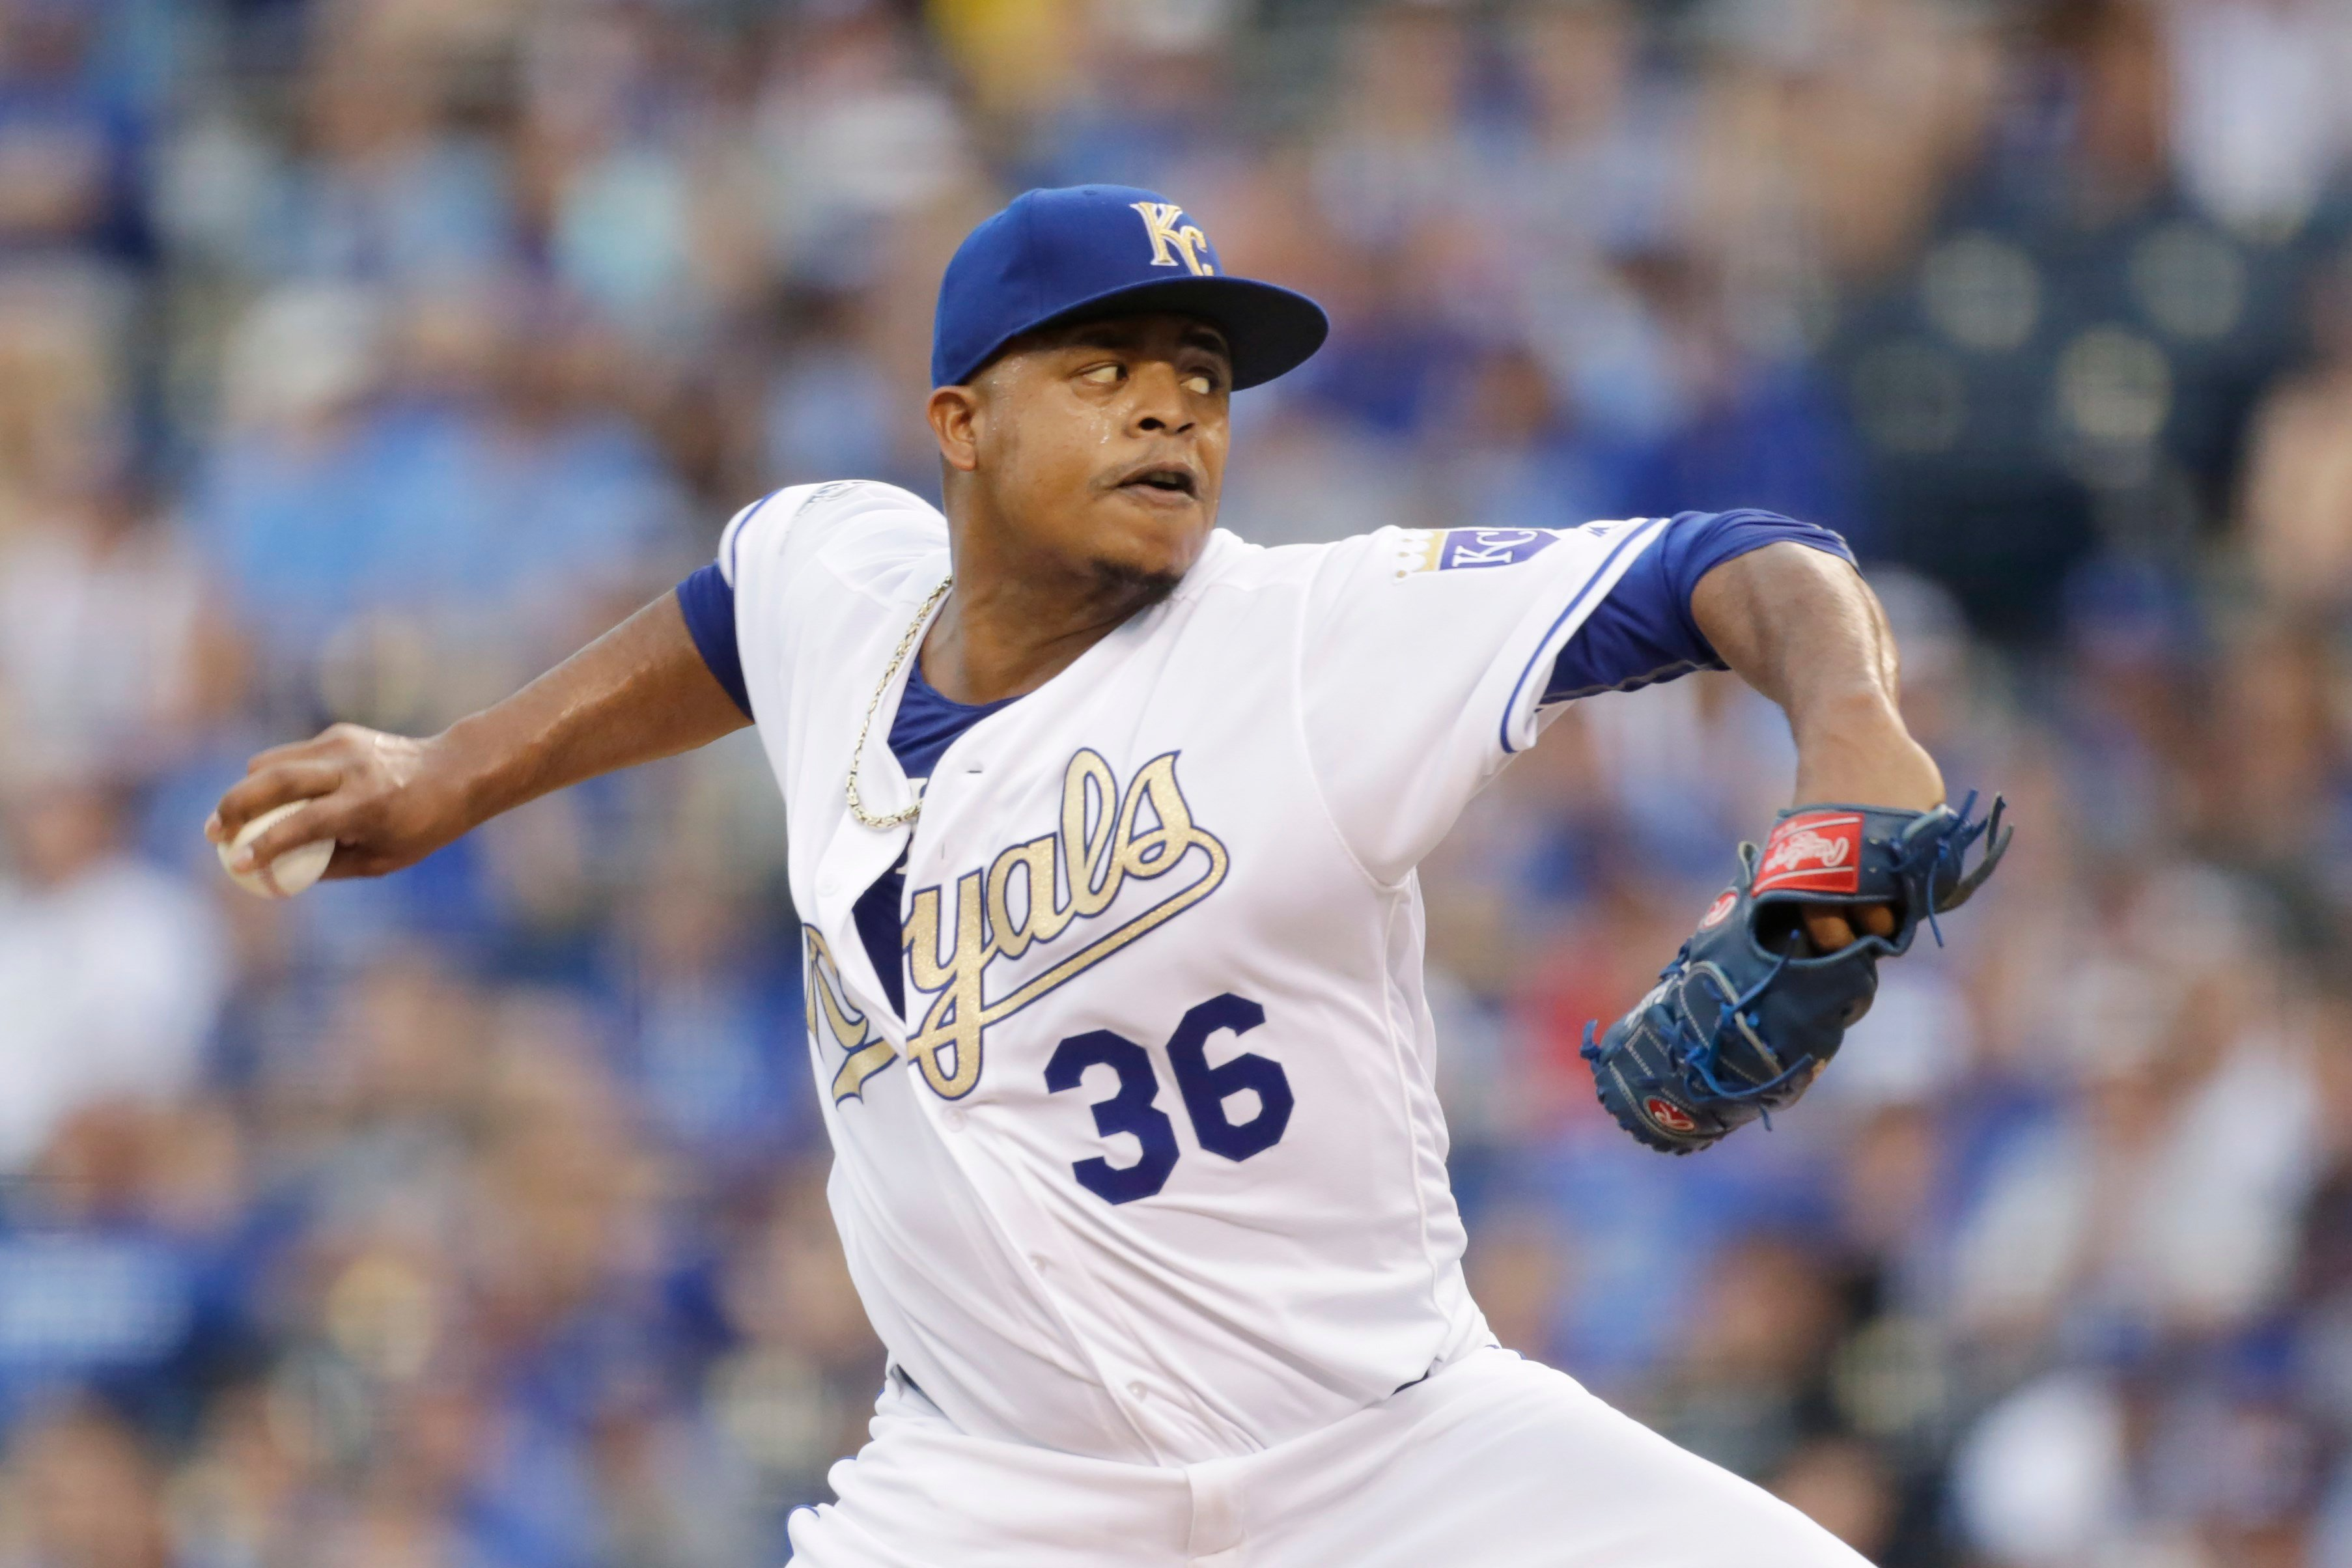 In two seasons with the Royals, Volquez was 23-20 with an ERA of 4.43.(AP)